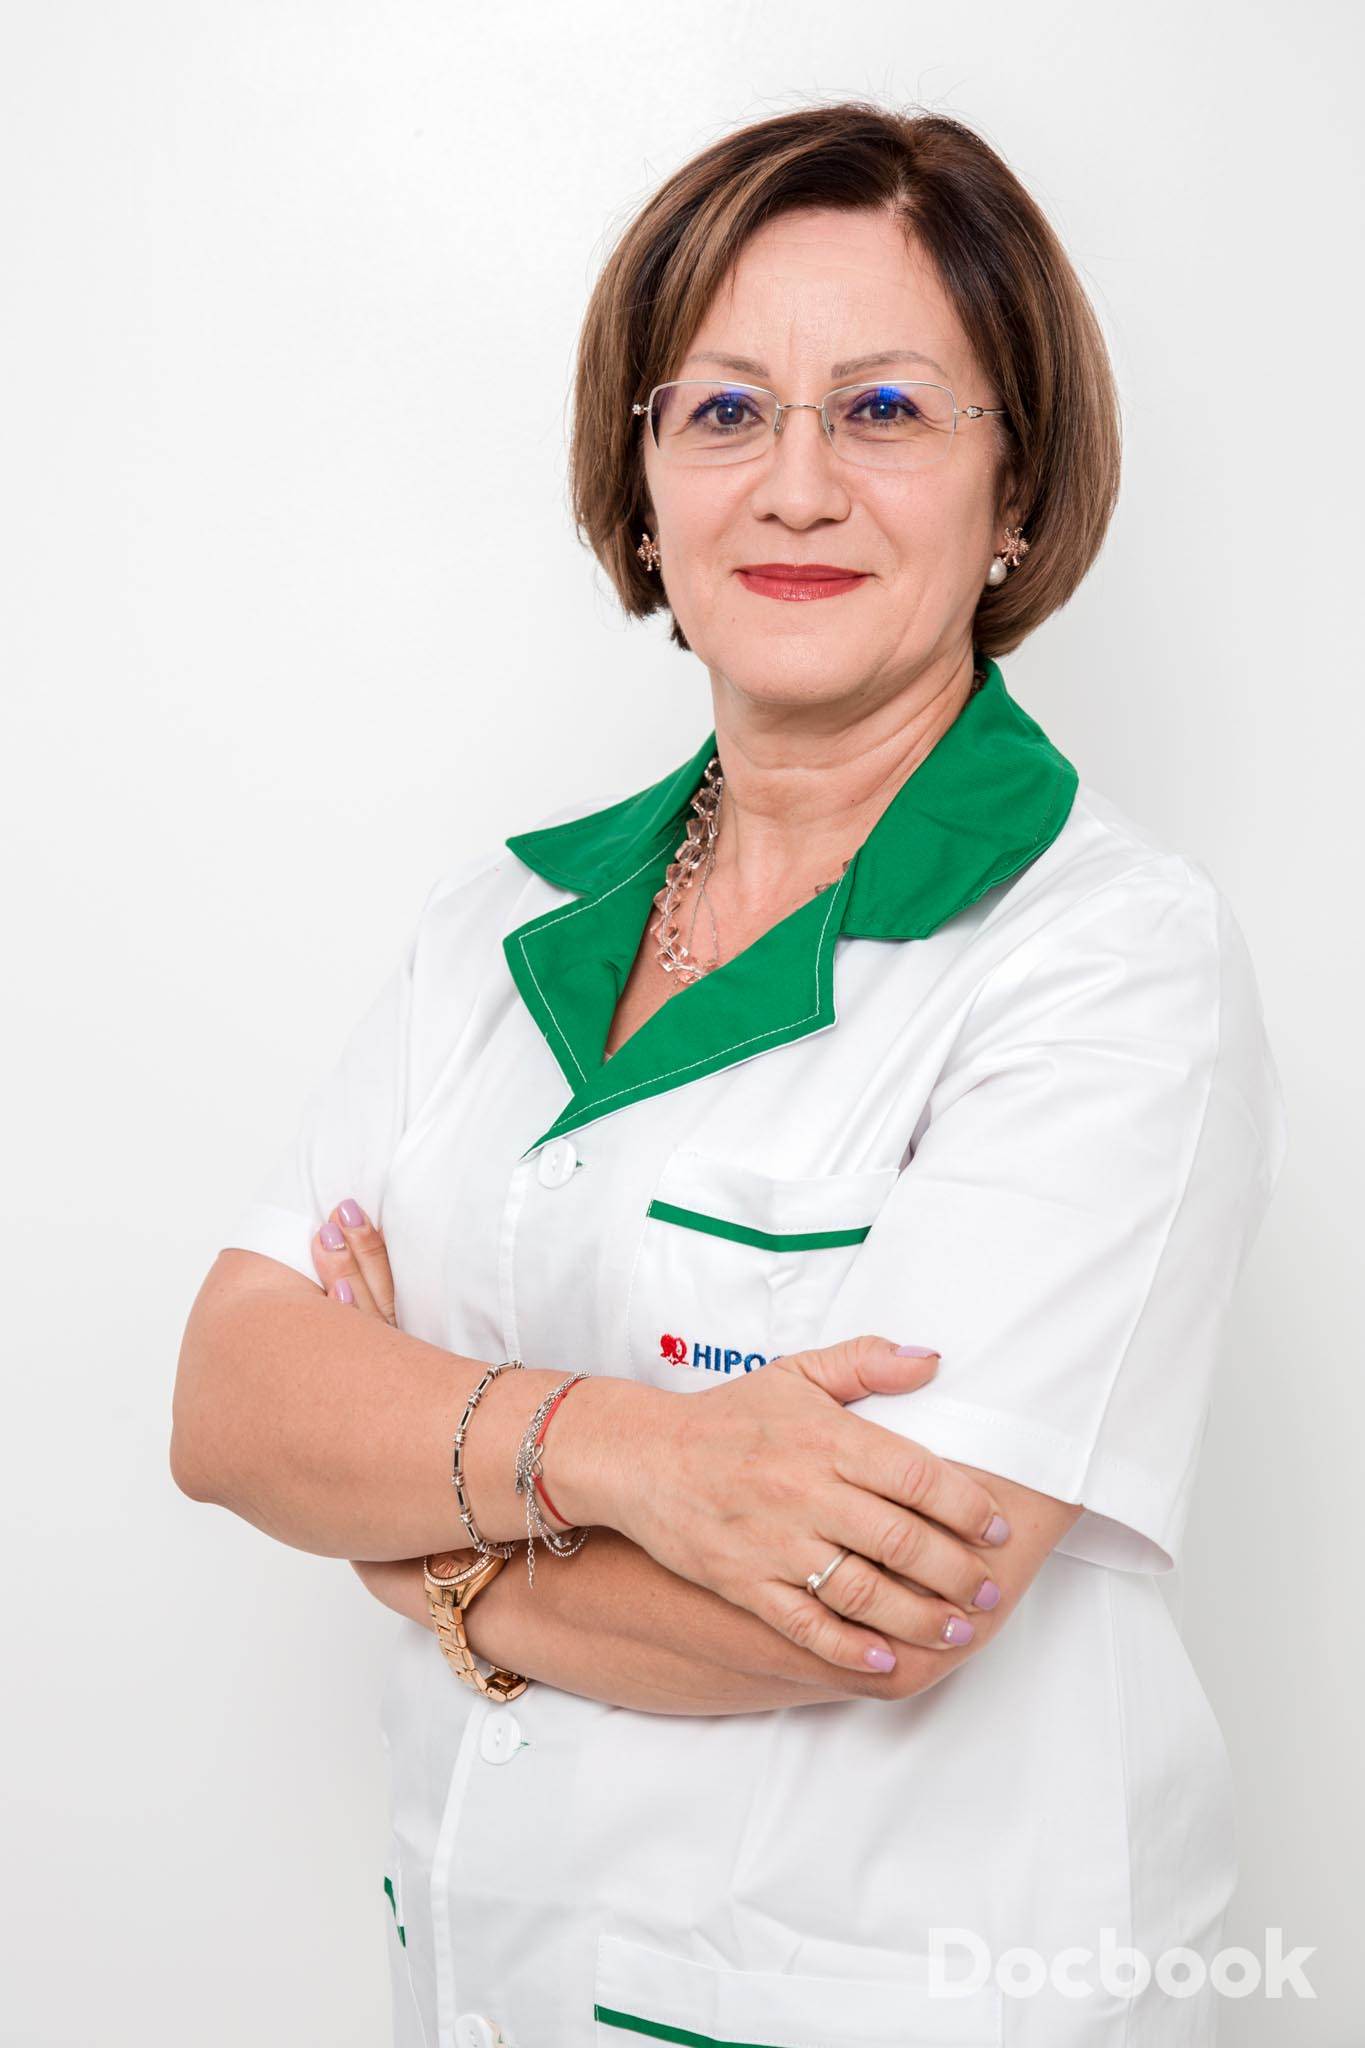 Dr. Despina Beer